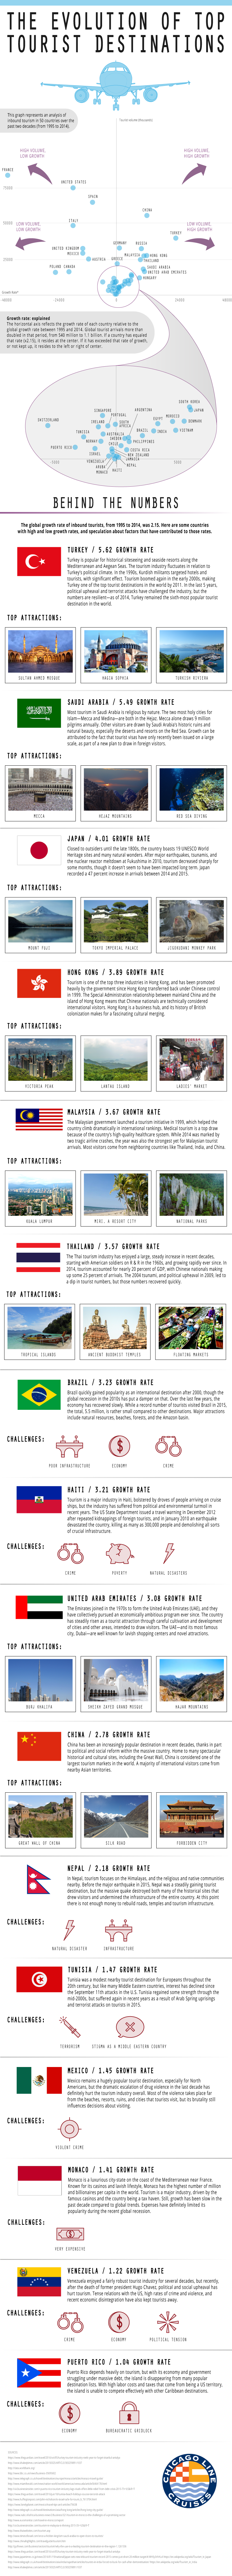 How The Most Famous Tourist Destinations Evolved - Infographic